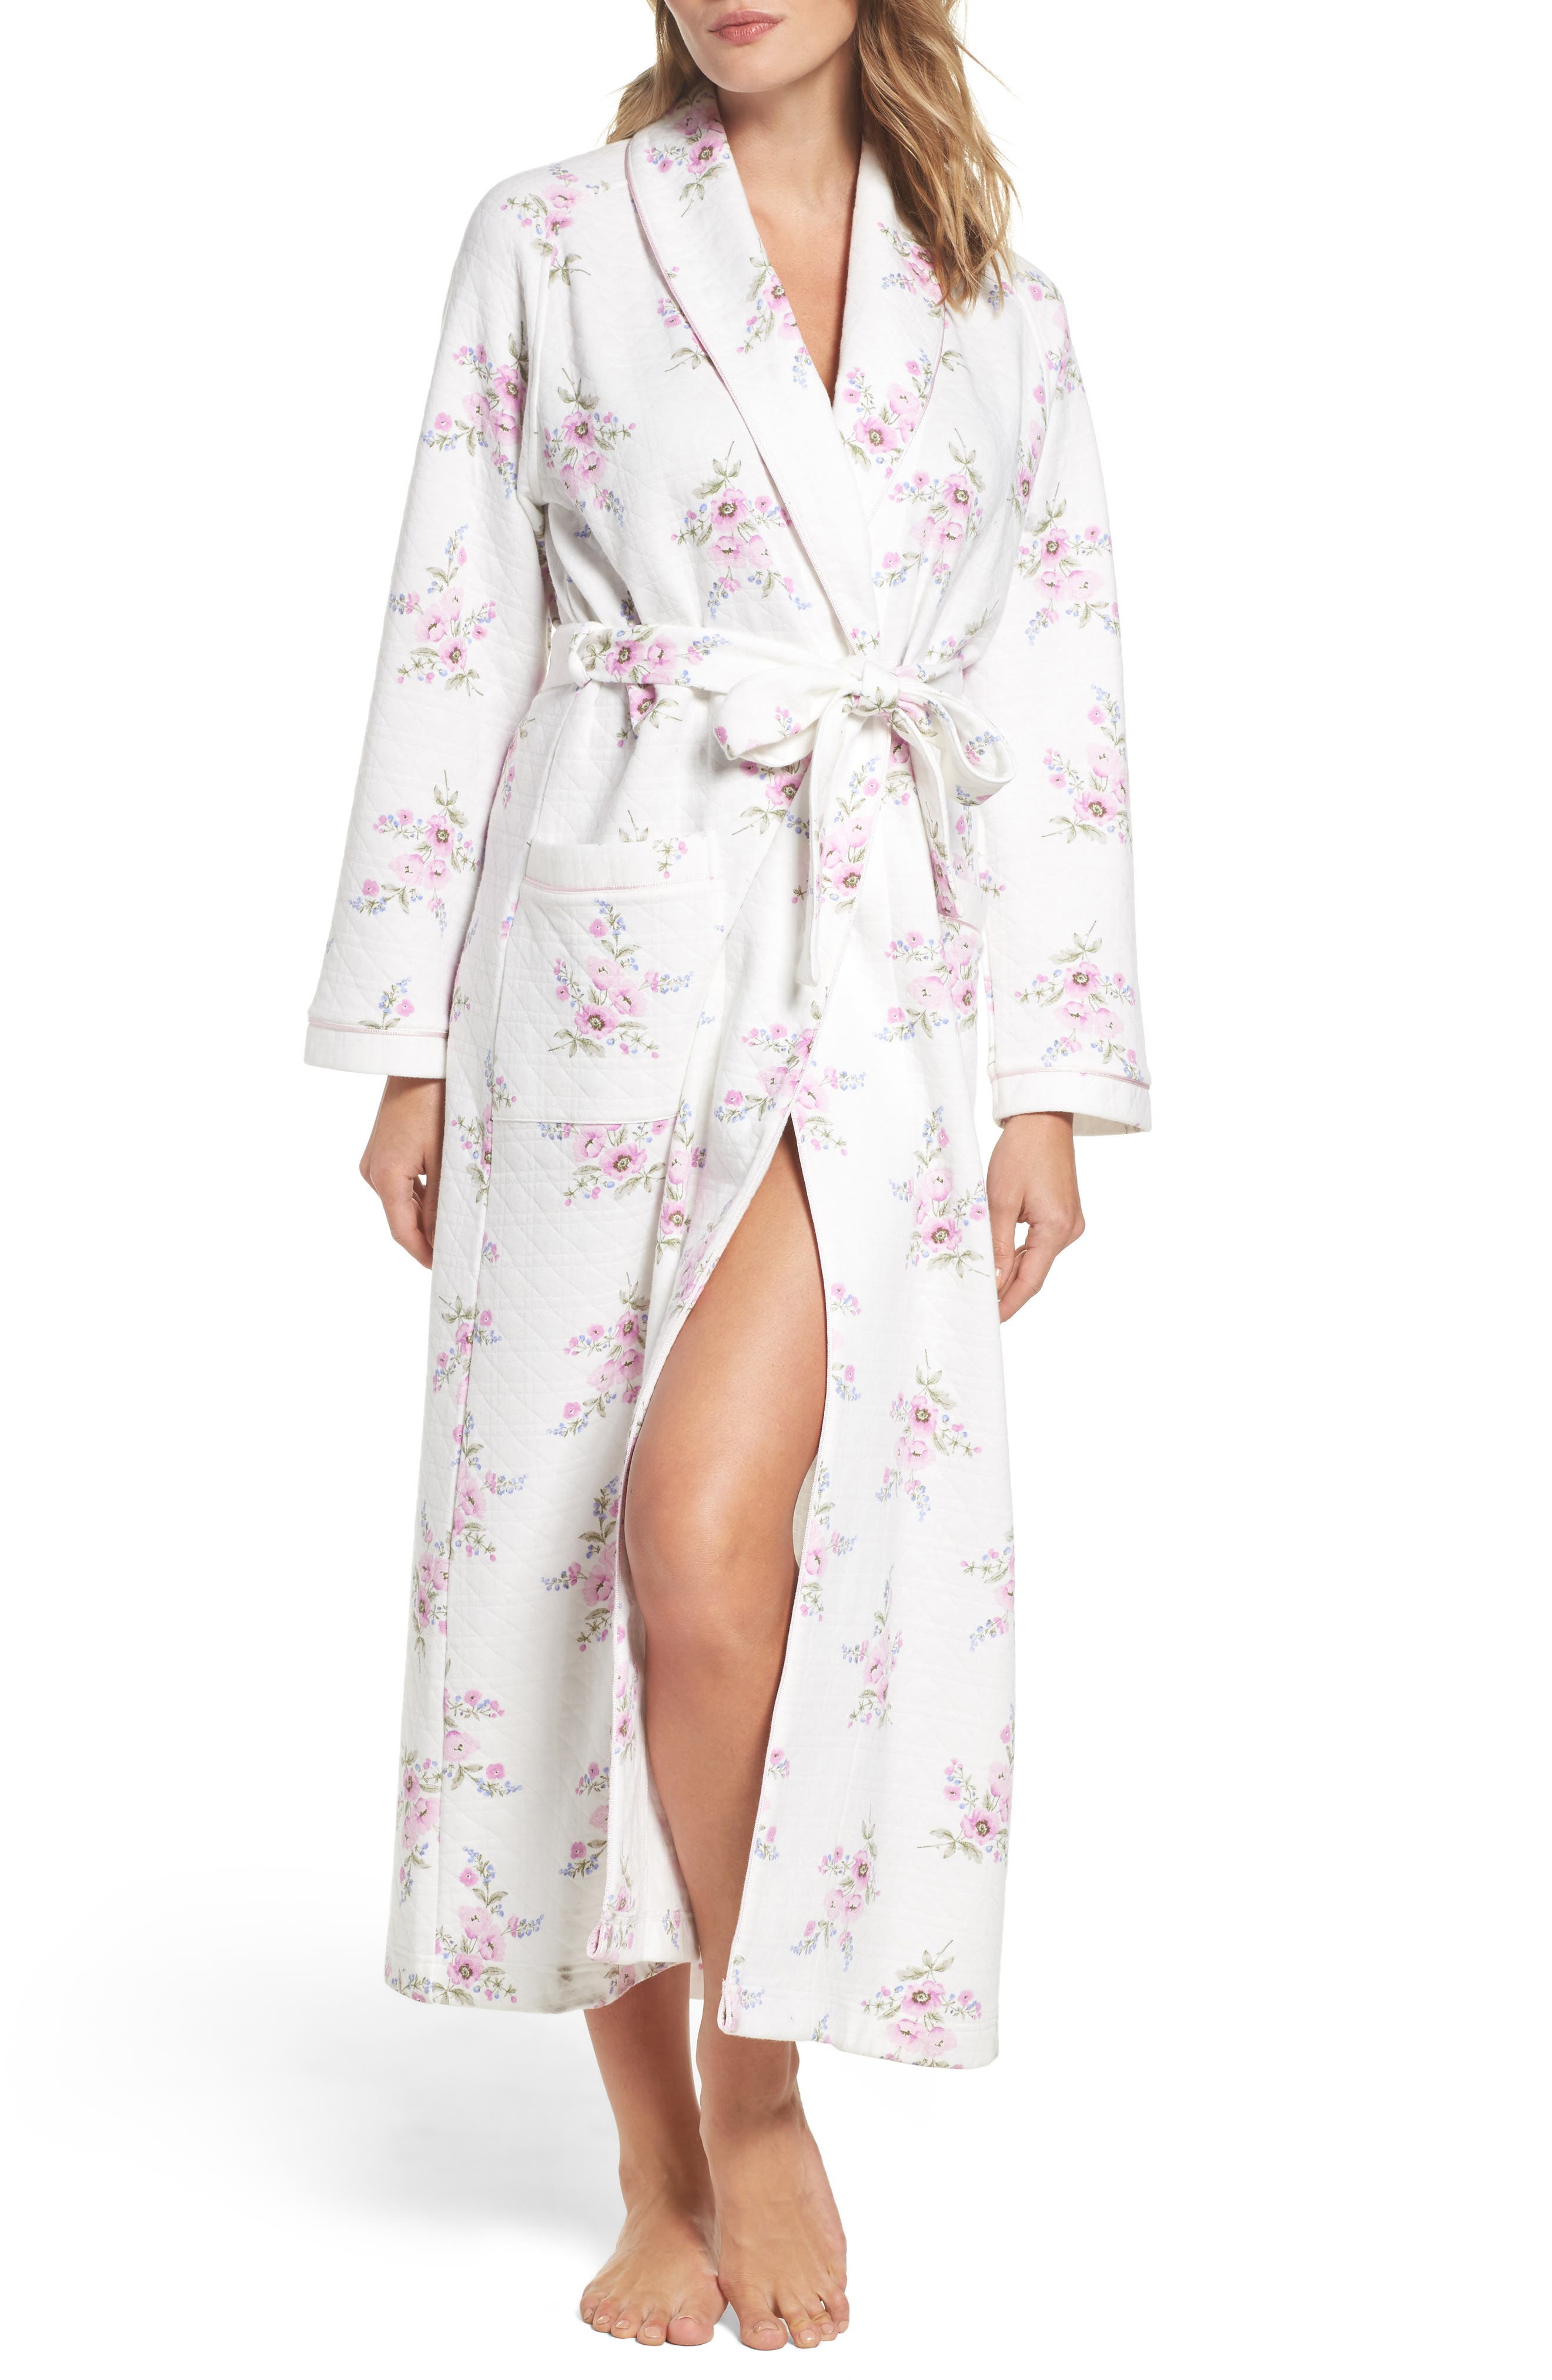 Alternate Image 1 Selected - Carole Hochman Floral Print Robe